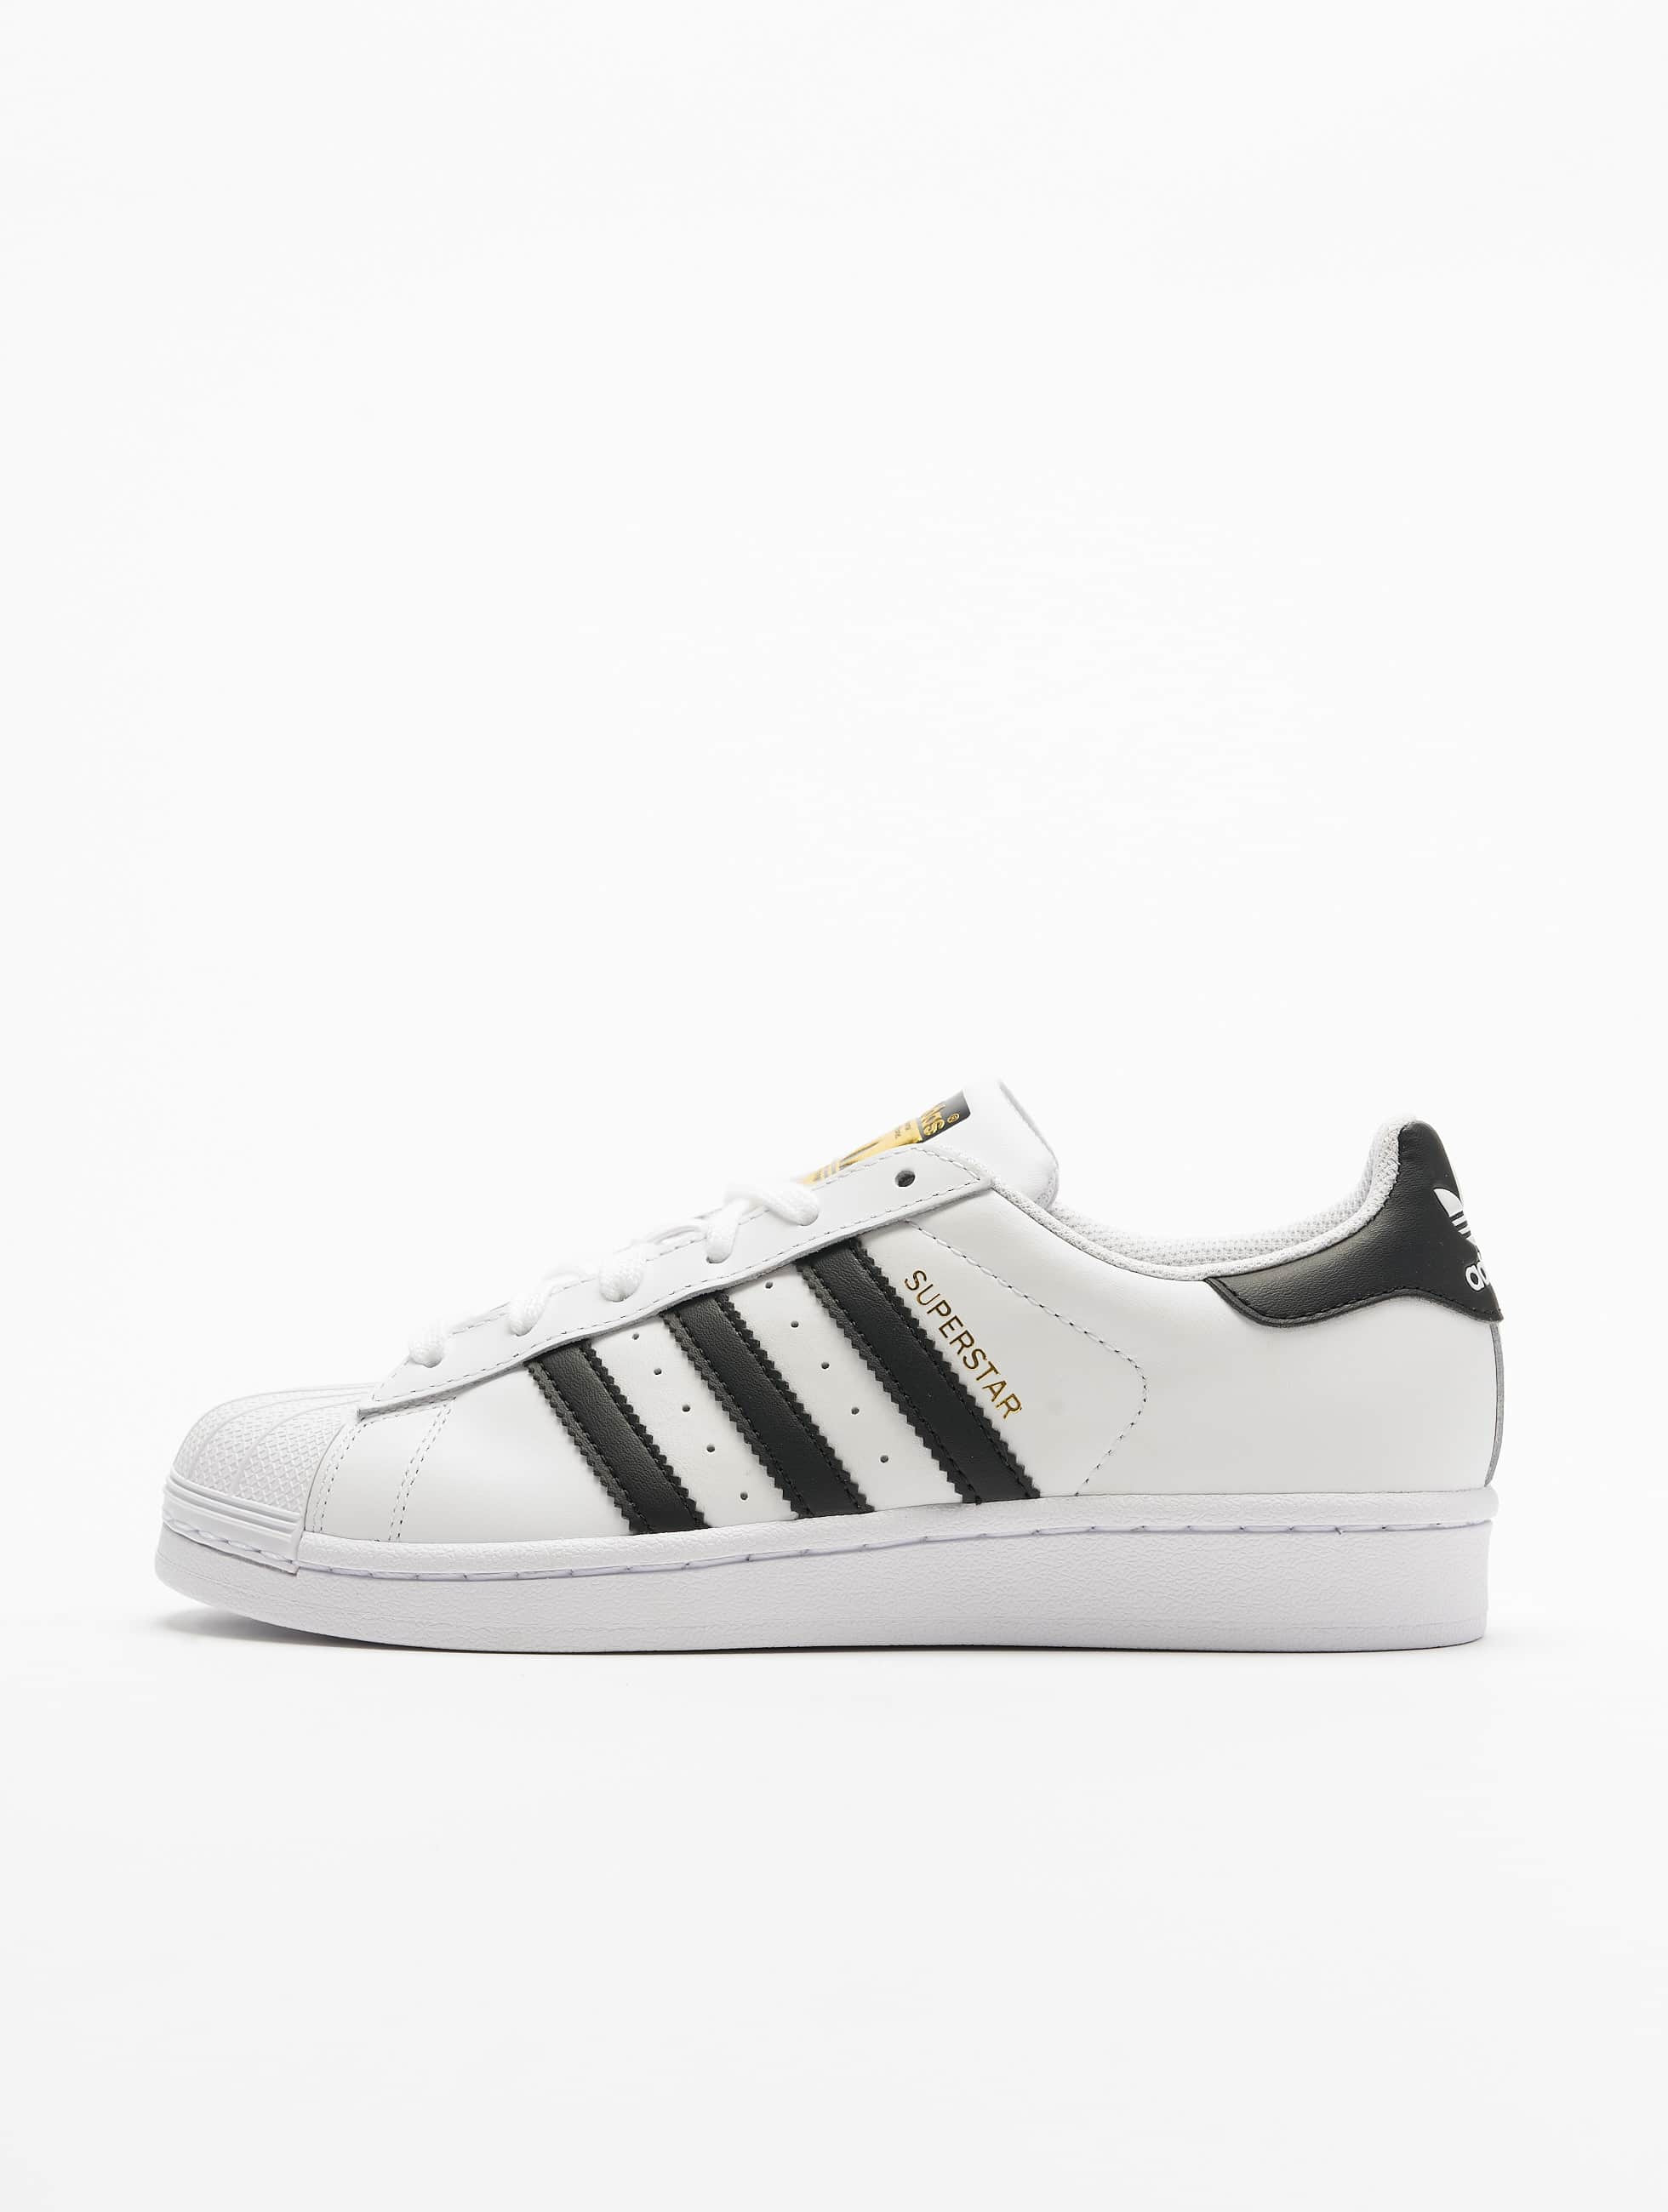 superstars adidas damen weiss 36